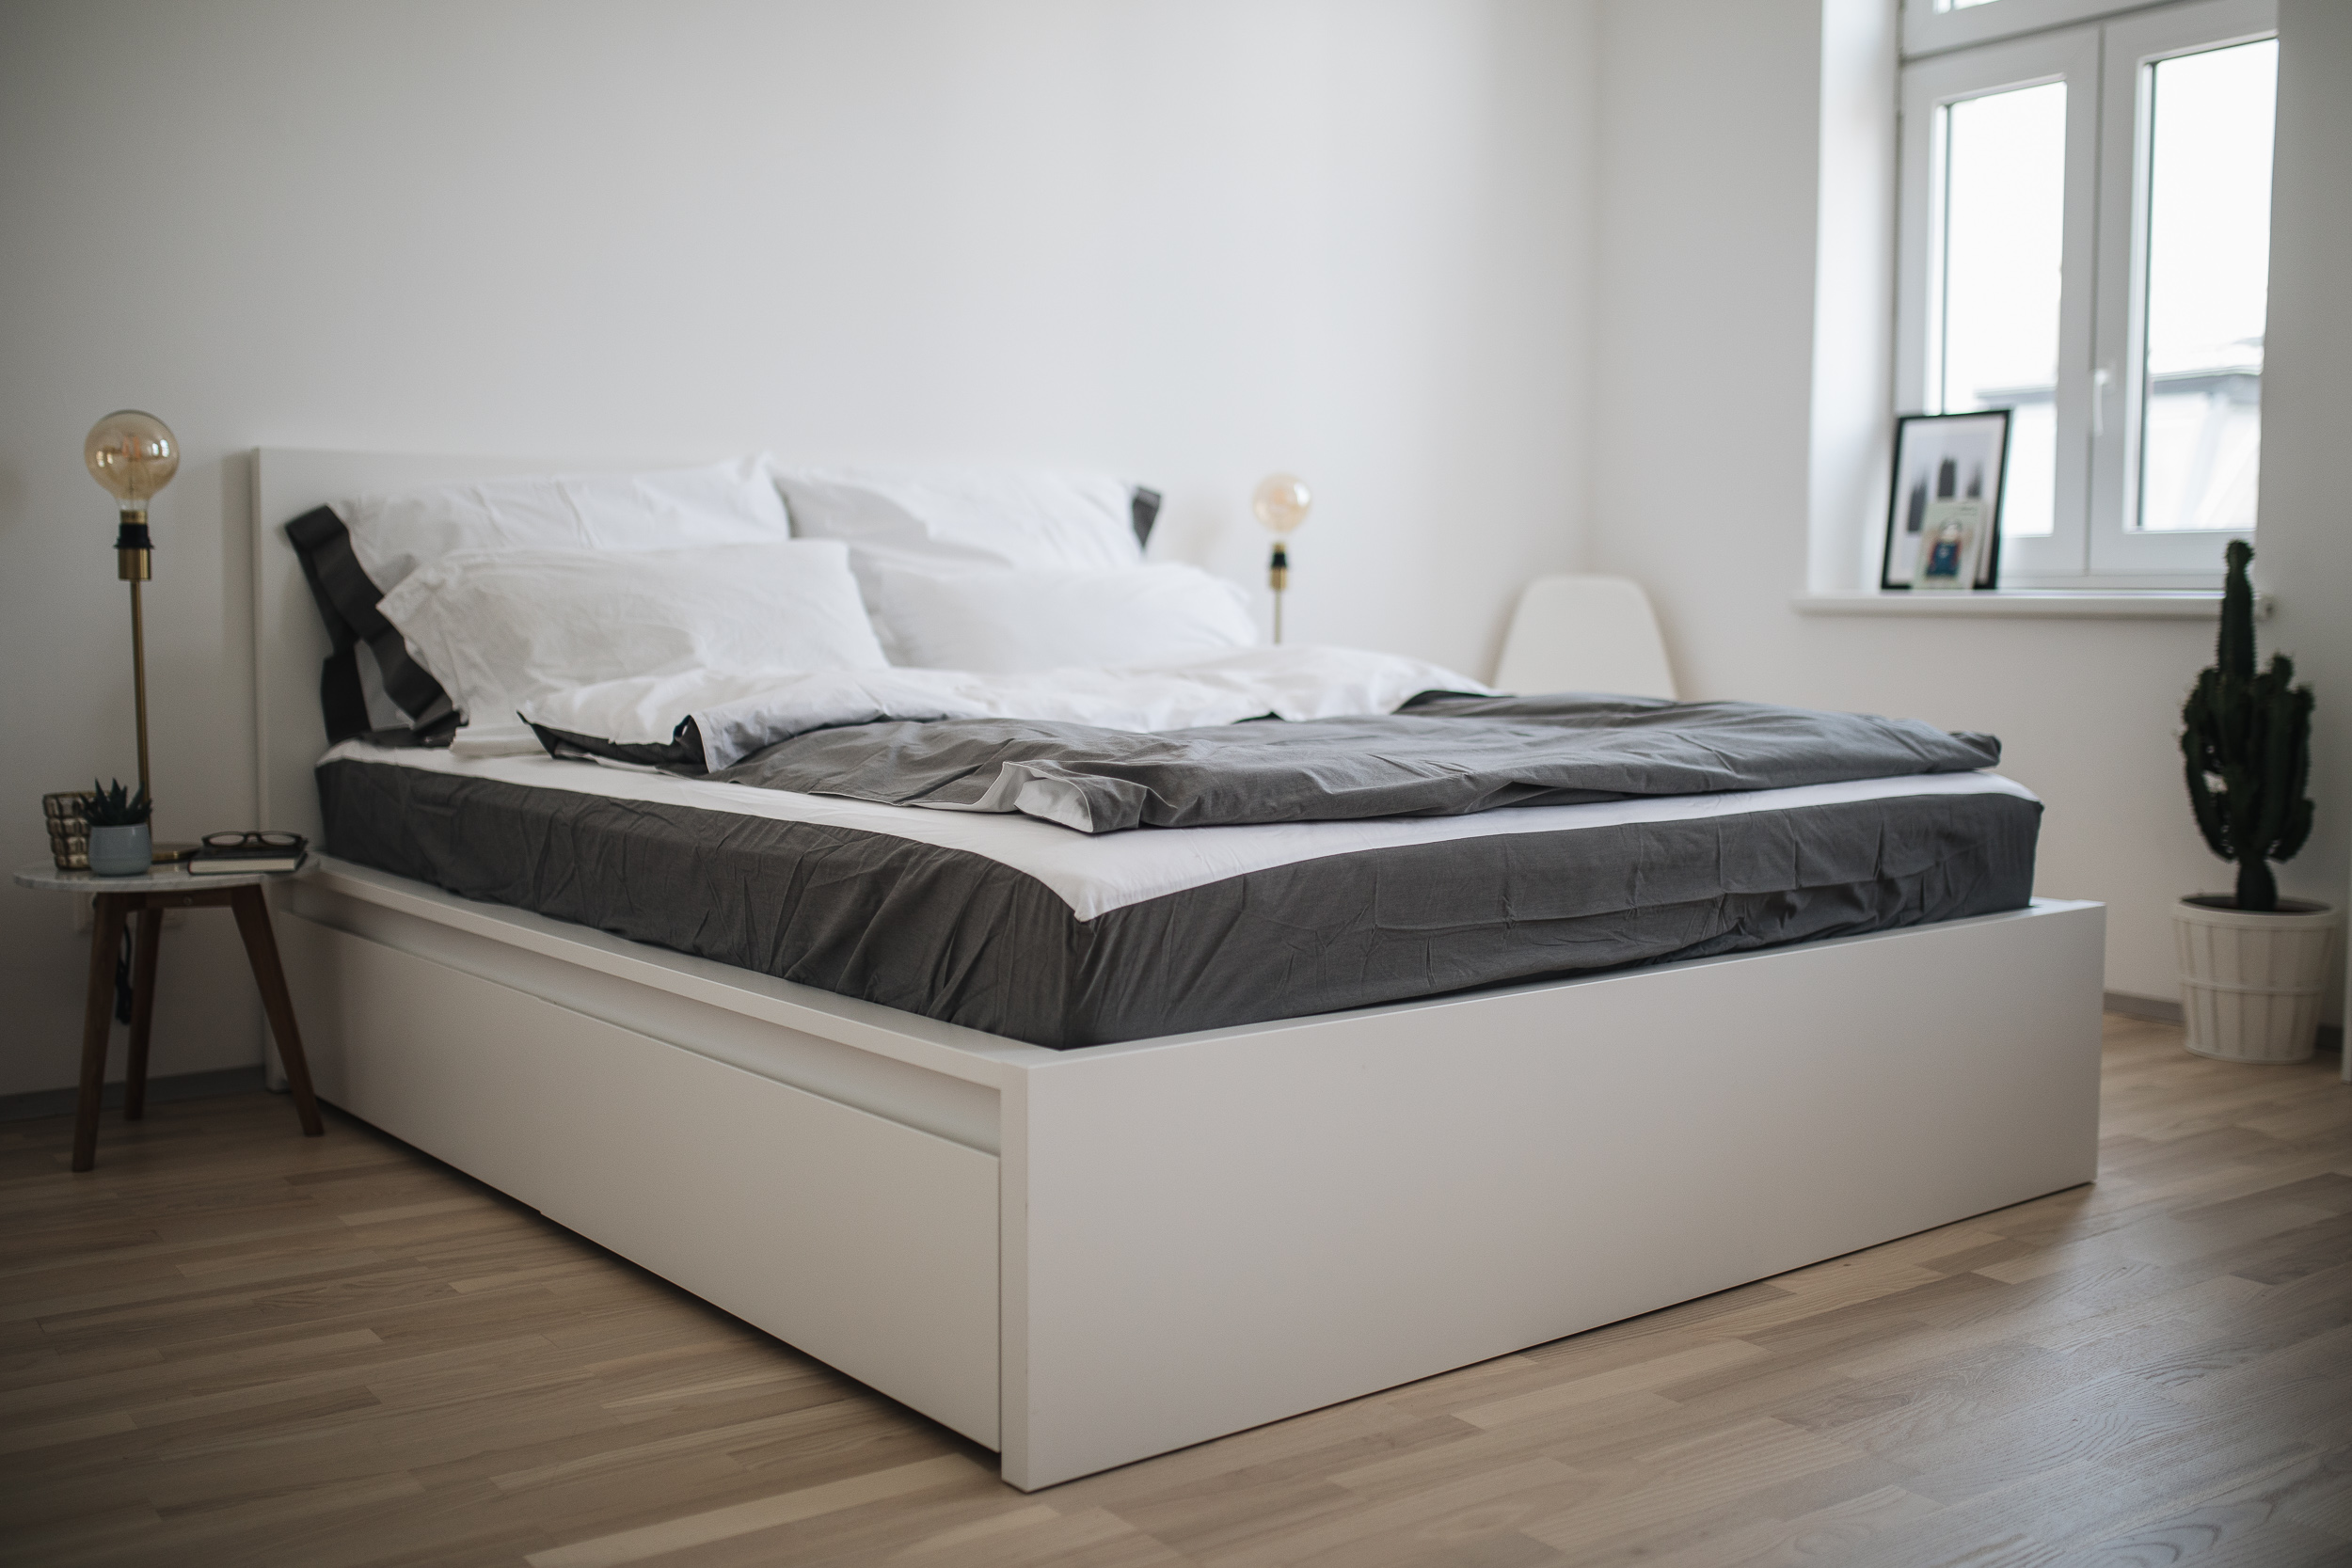 unser schlafzimmer mit casper matratze zur wohlf hloase meanwhileinawesometown. Black Bedroom Furniture Sets. Home Design Ideas